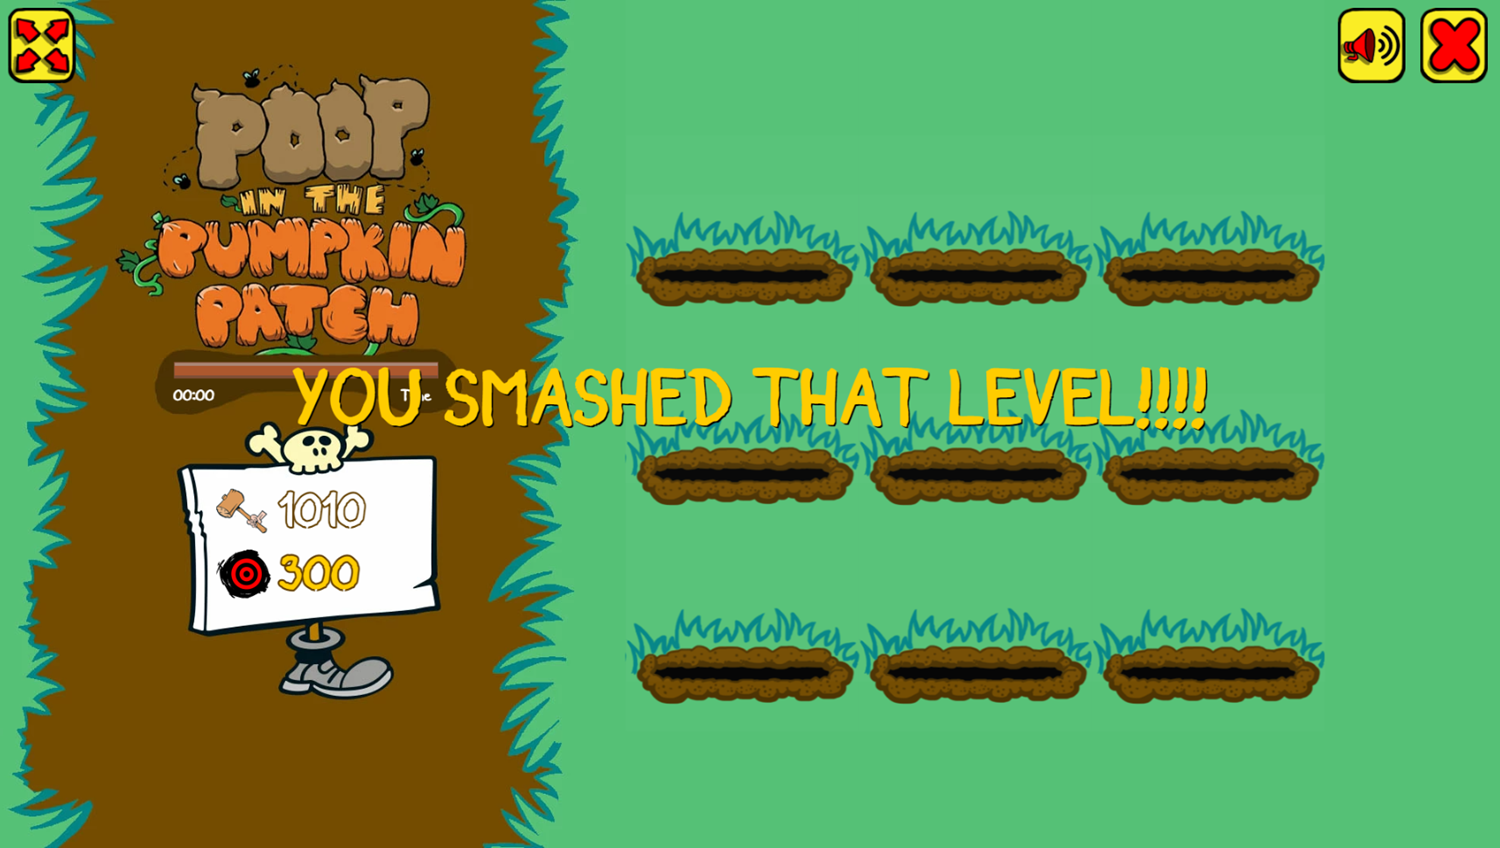 Poop in the Pumpkin Patch Game Level Complete Screenshot.